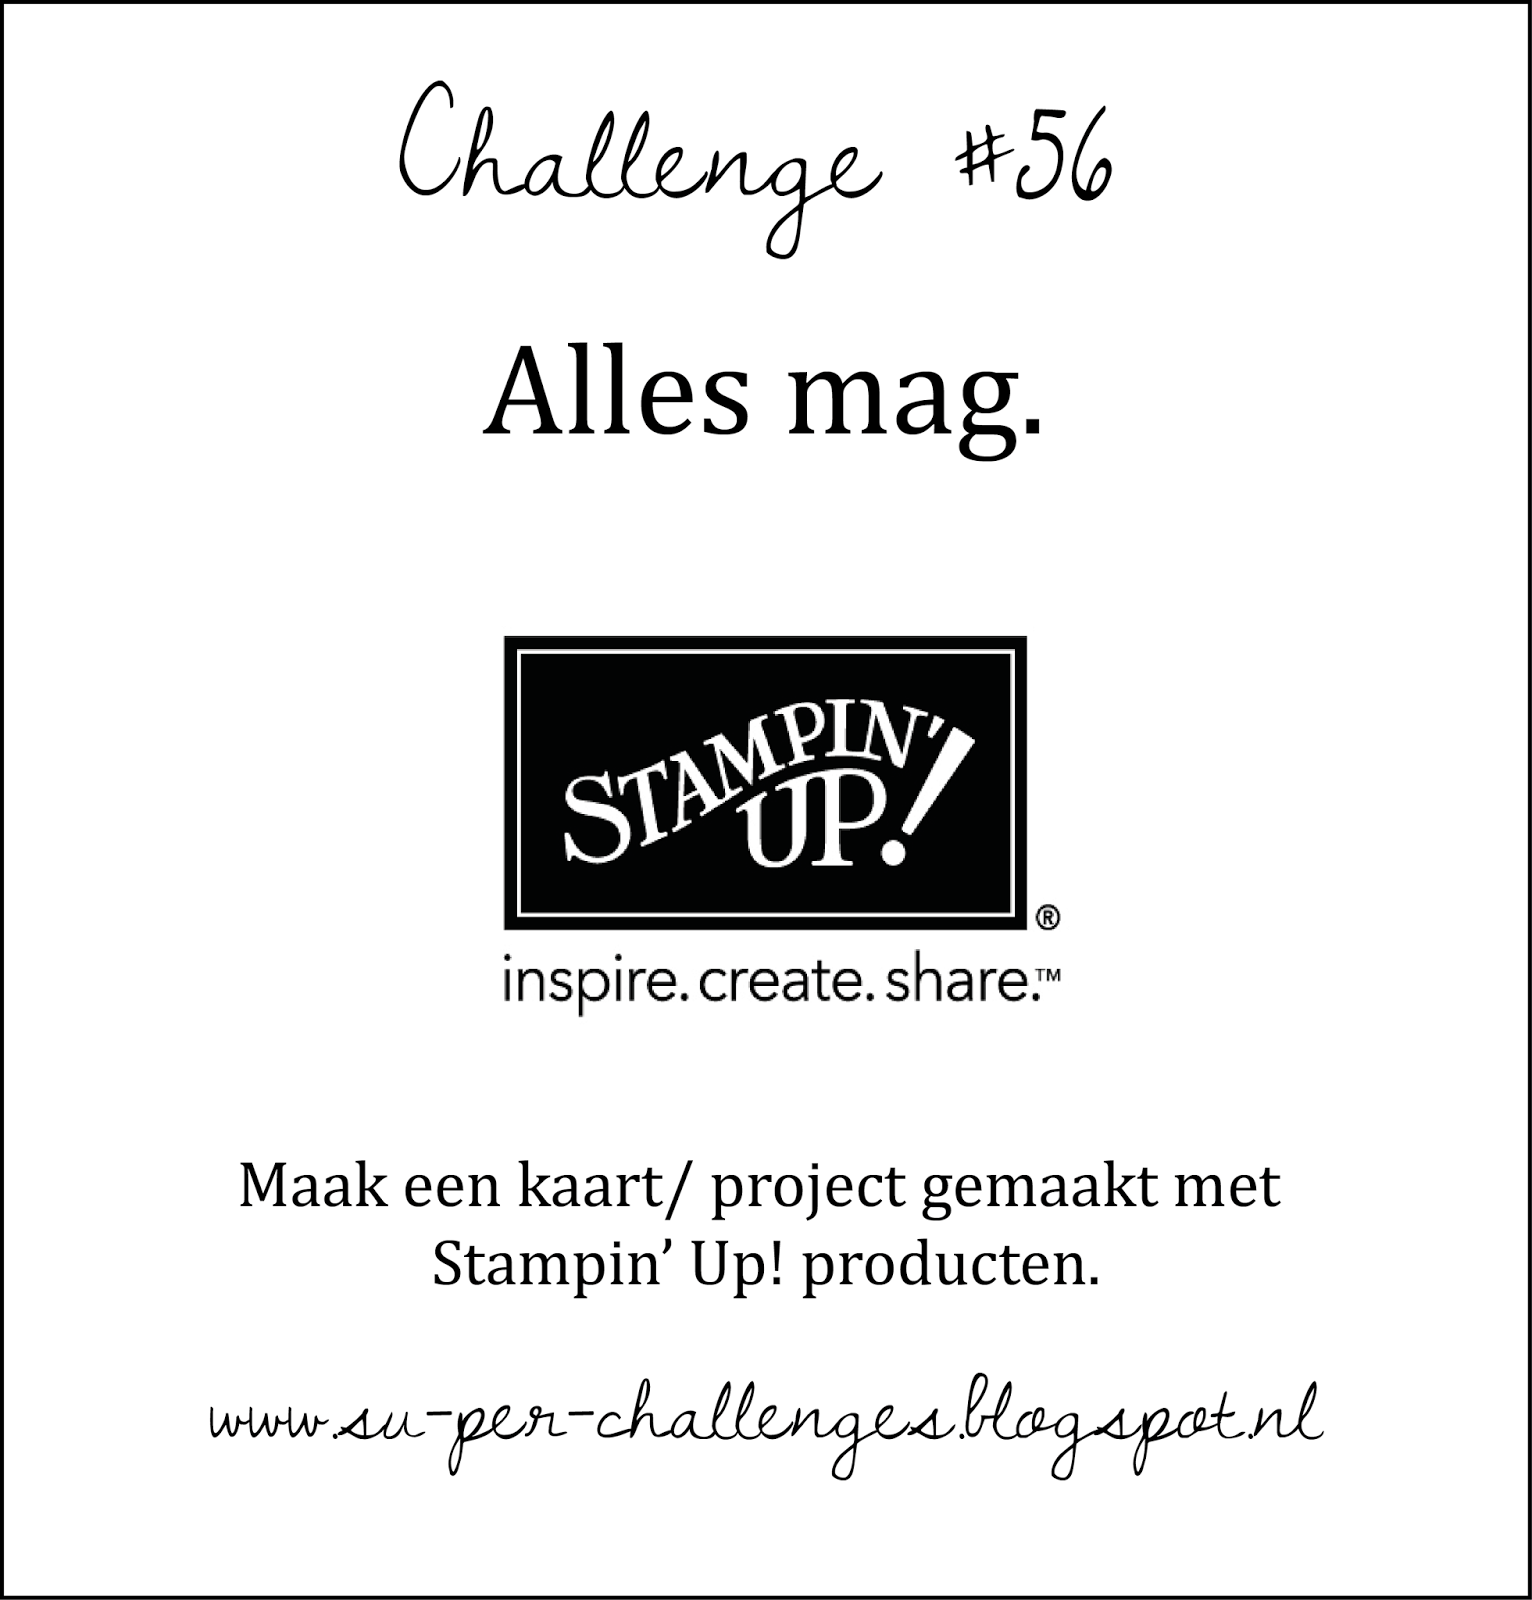 http://su-per-challenges.blogspot.nl/2014/09/challenge-56-alles-mag.html